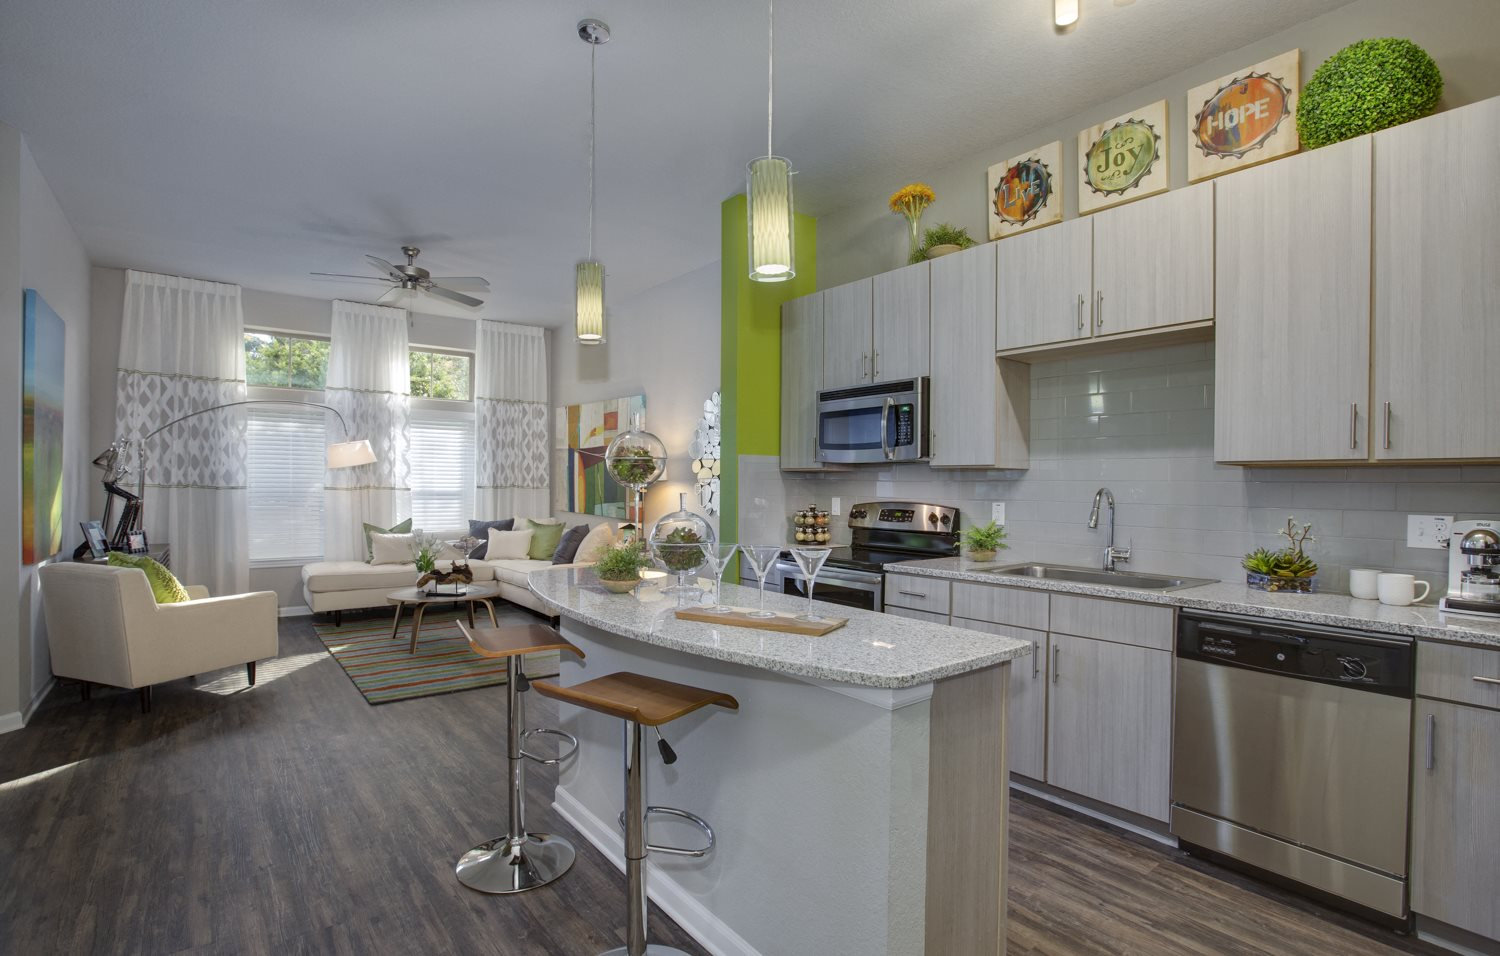 Open Floor Plan Kitchen with Wood Plank Vinyl Flooring (in Select Units) at The Ivy Residences at Health Village, Orlando, FL 32804